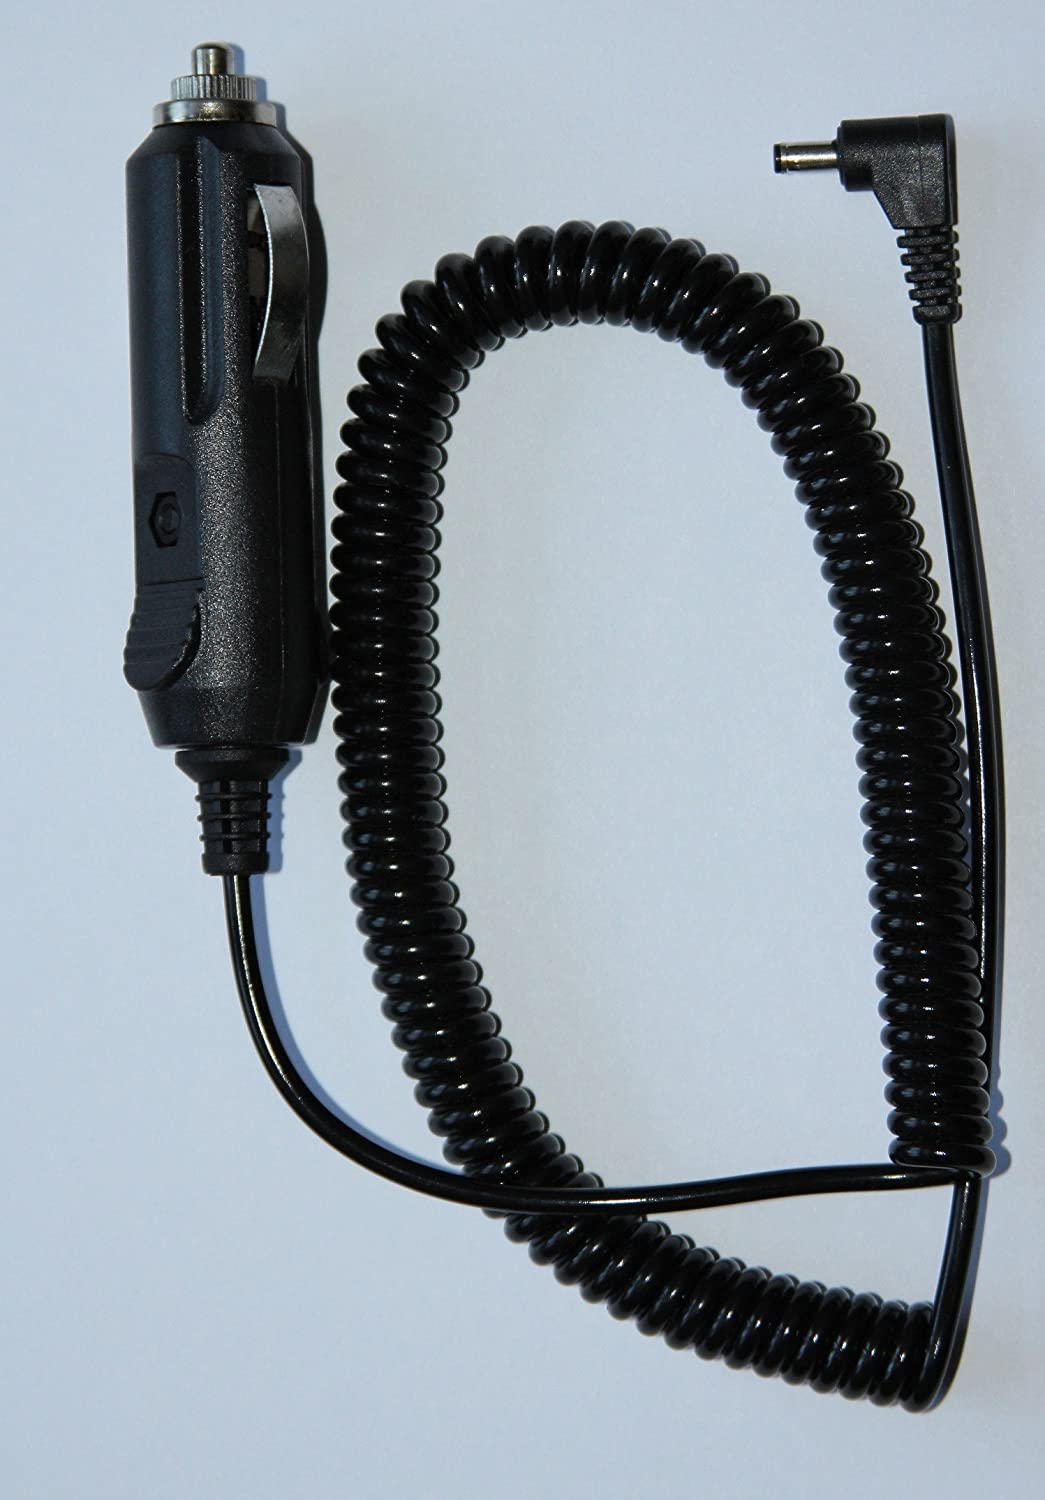 Cobra 420026N001 Power Cord Coiled 12 Volt Coiled Power That Stretches to 6 Feet